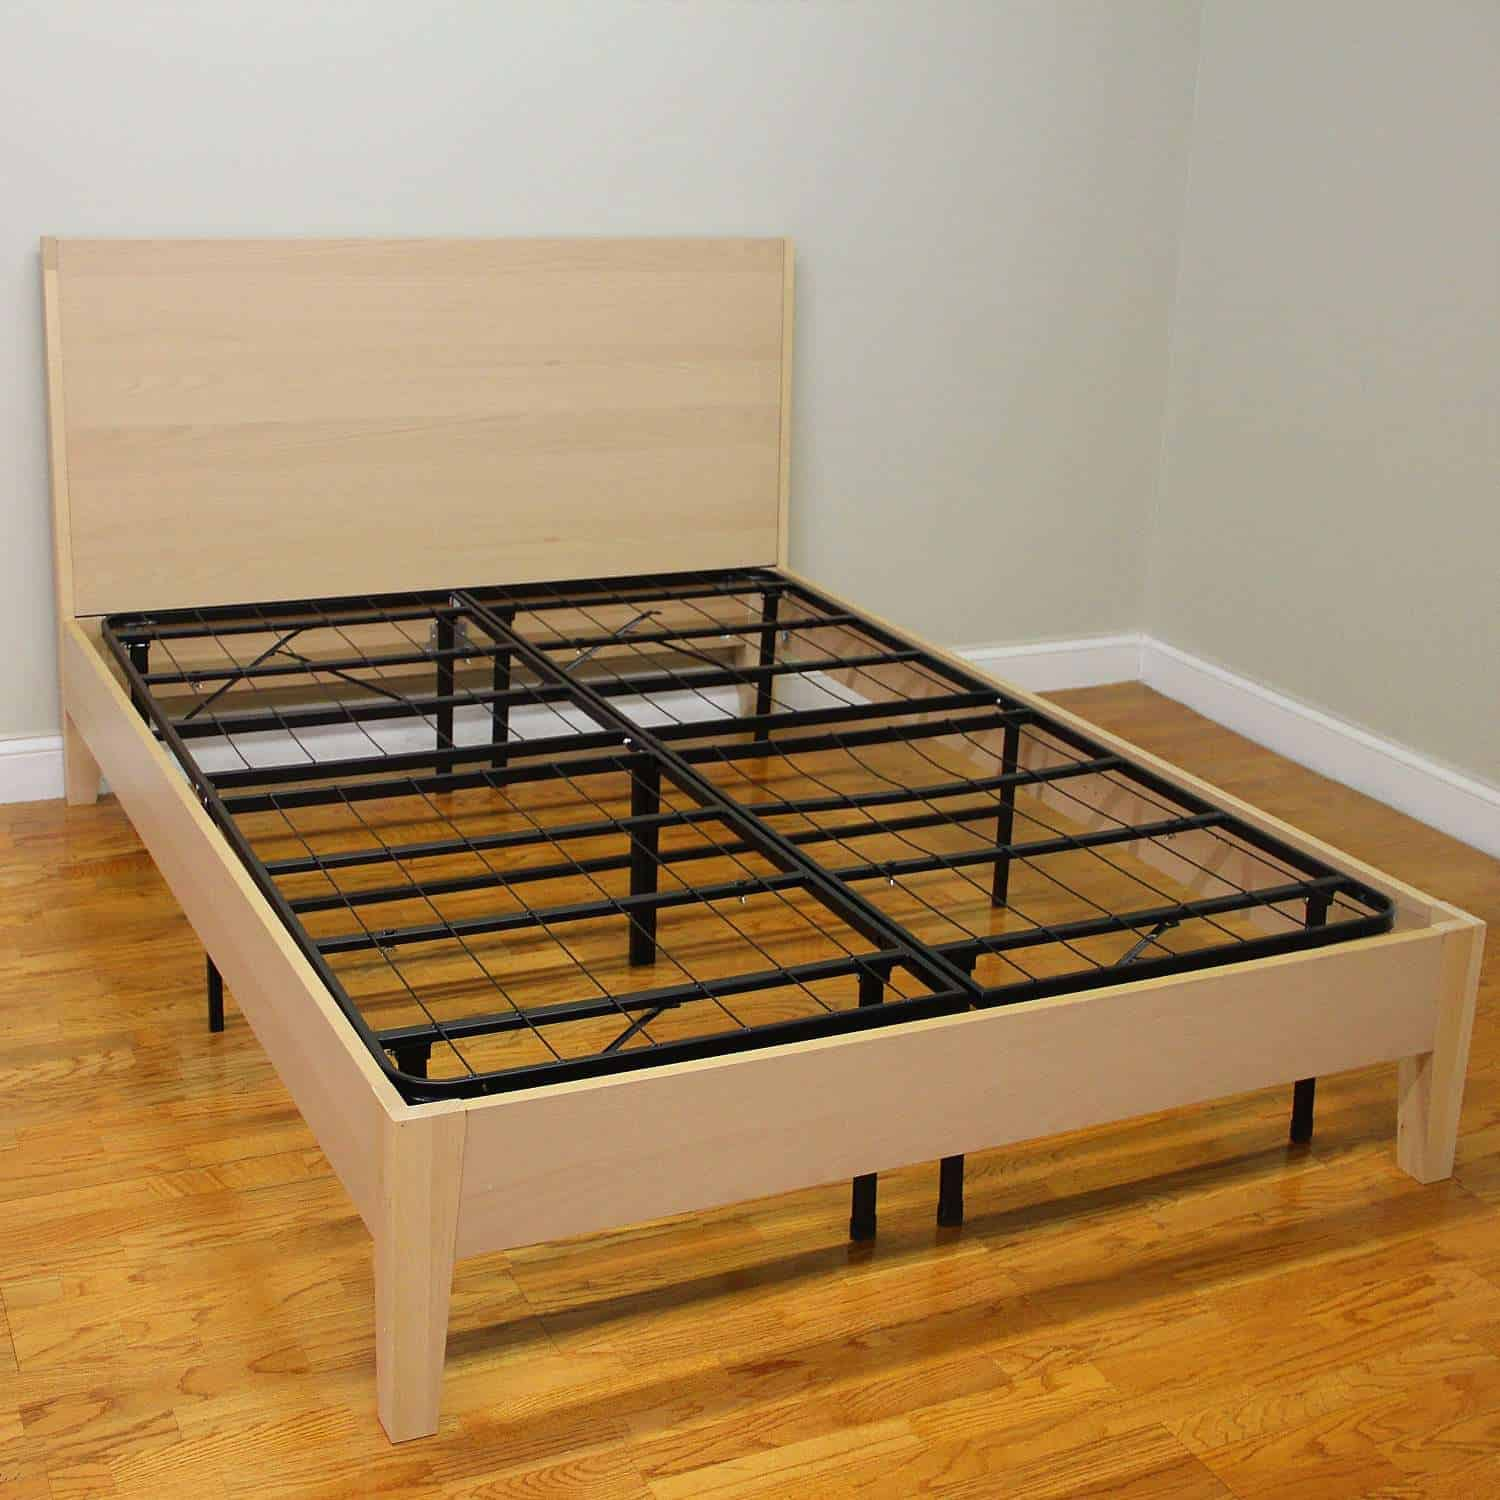 Best bed frame and box spring reviews buying guide for How to cover a bed